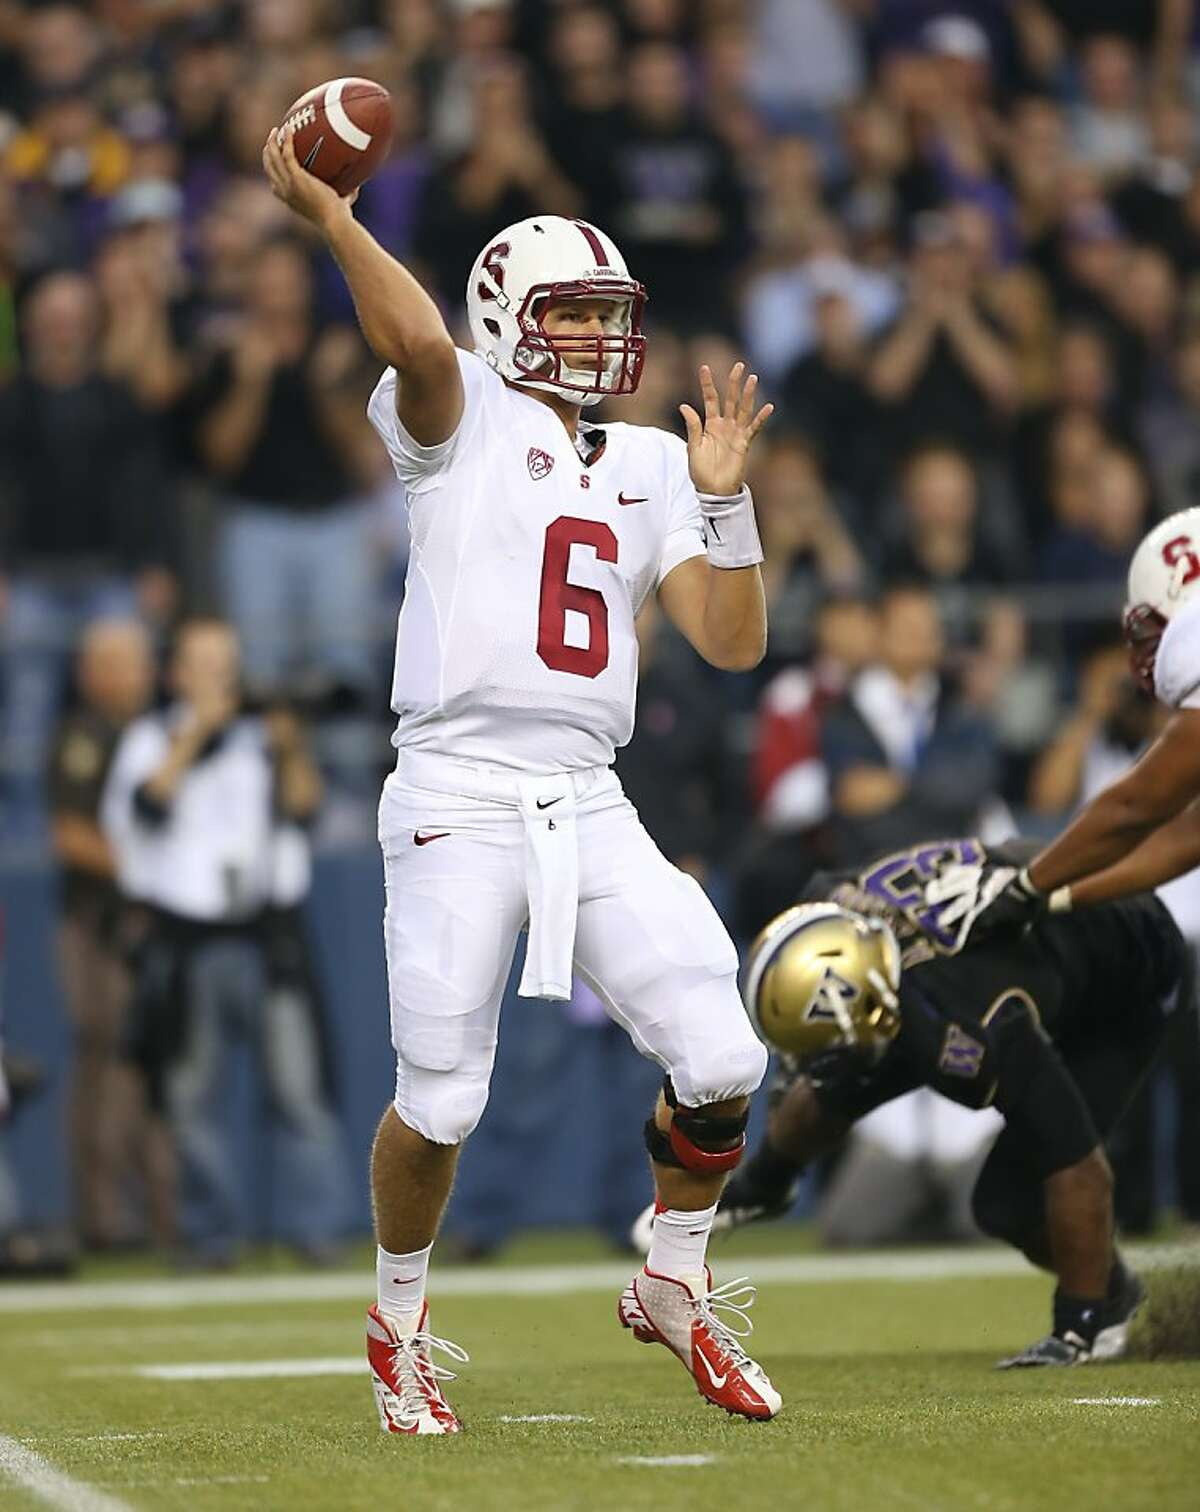 SEATTLE, WA - SEPTEMBER 27: Quarterback Josh Nunes #6 of the Stanford Cardinal passes against the Washington Huskies on September 27, 2012 at CenturyLink Field in Seattle, Washington. (Photo by Otto Greule Jr/Getty Images)